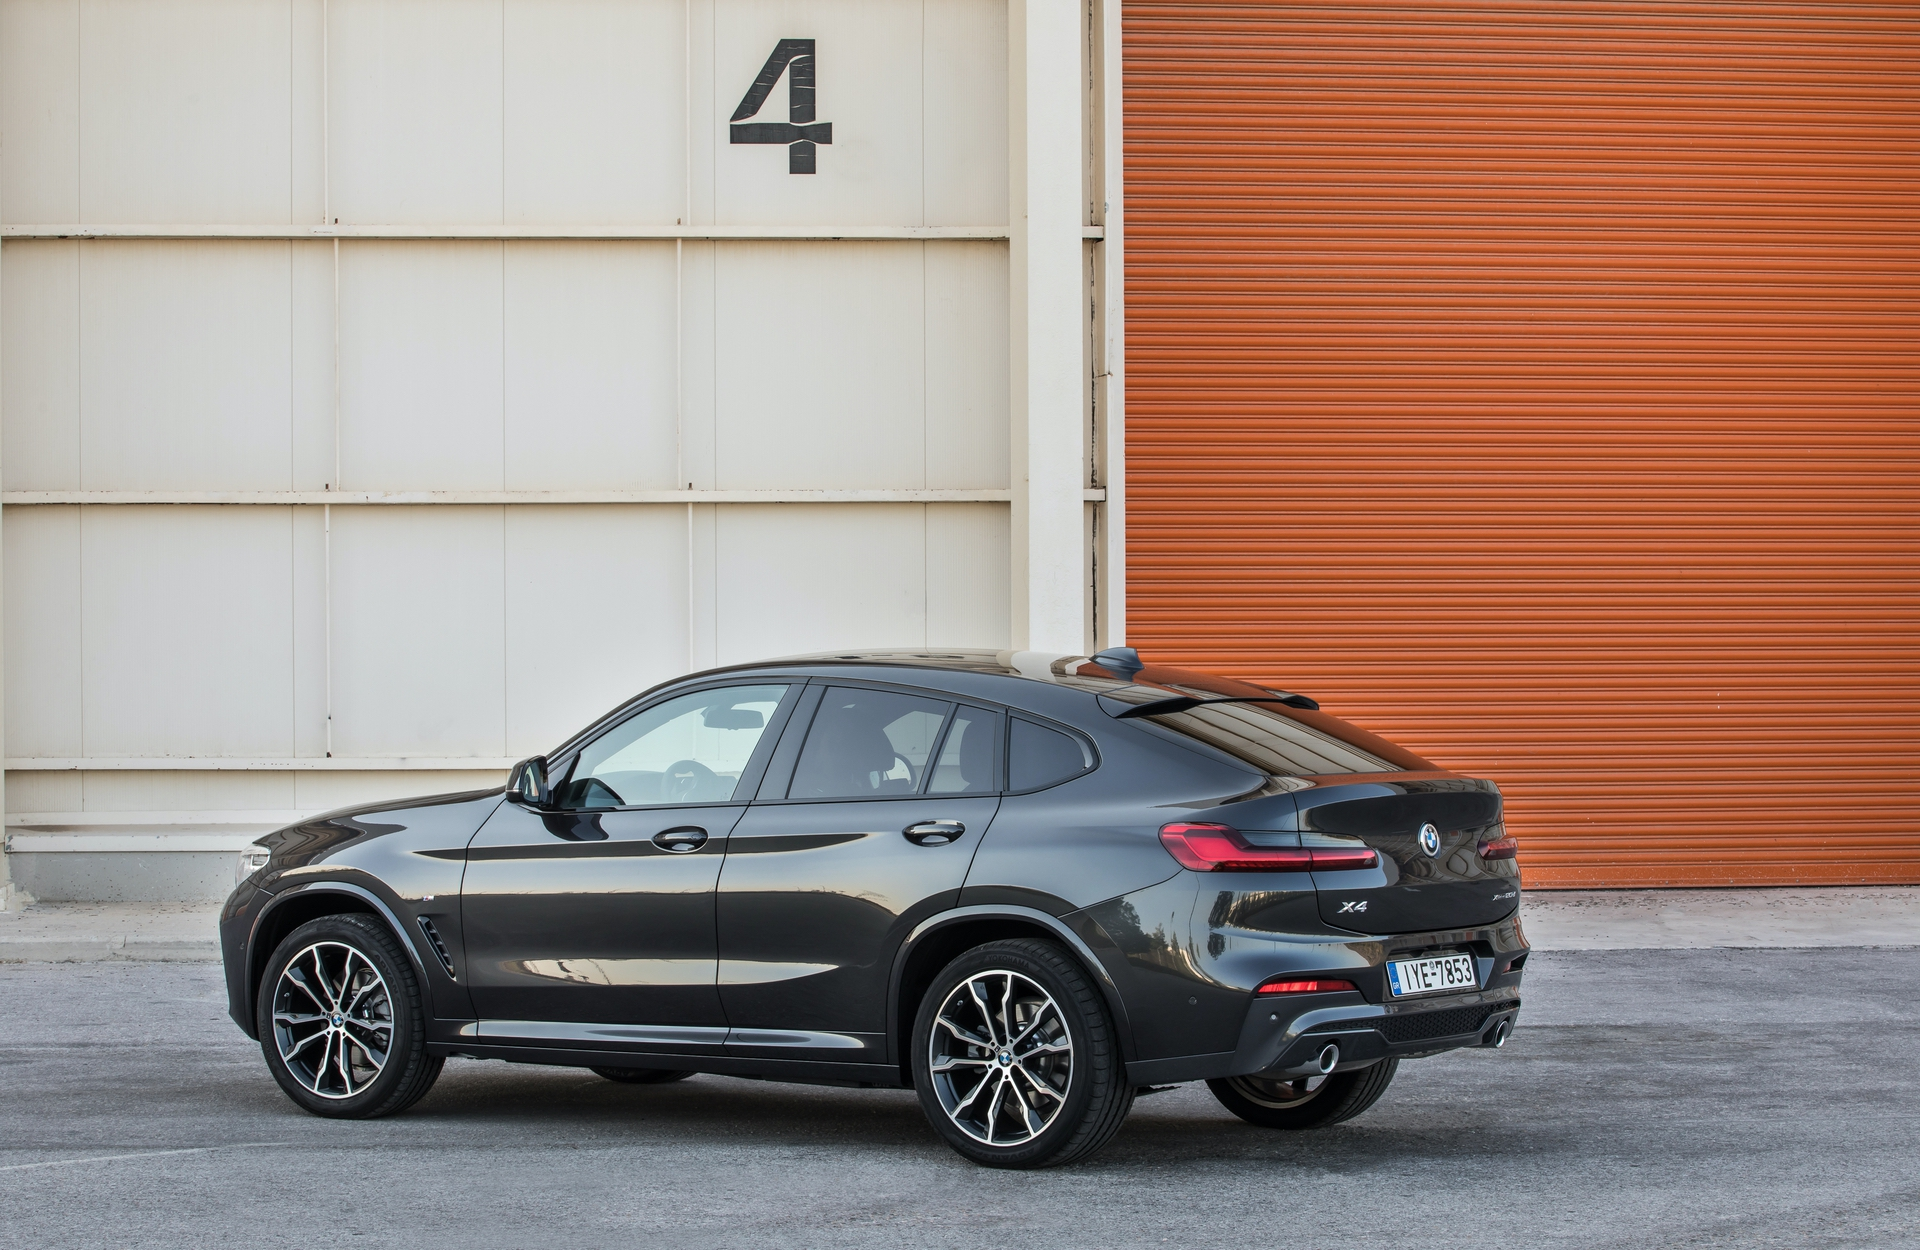 BMW_X4_greek_presskit_0048